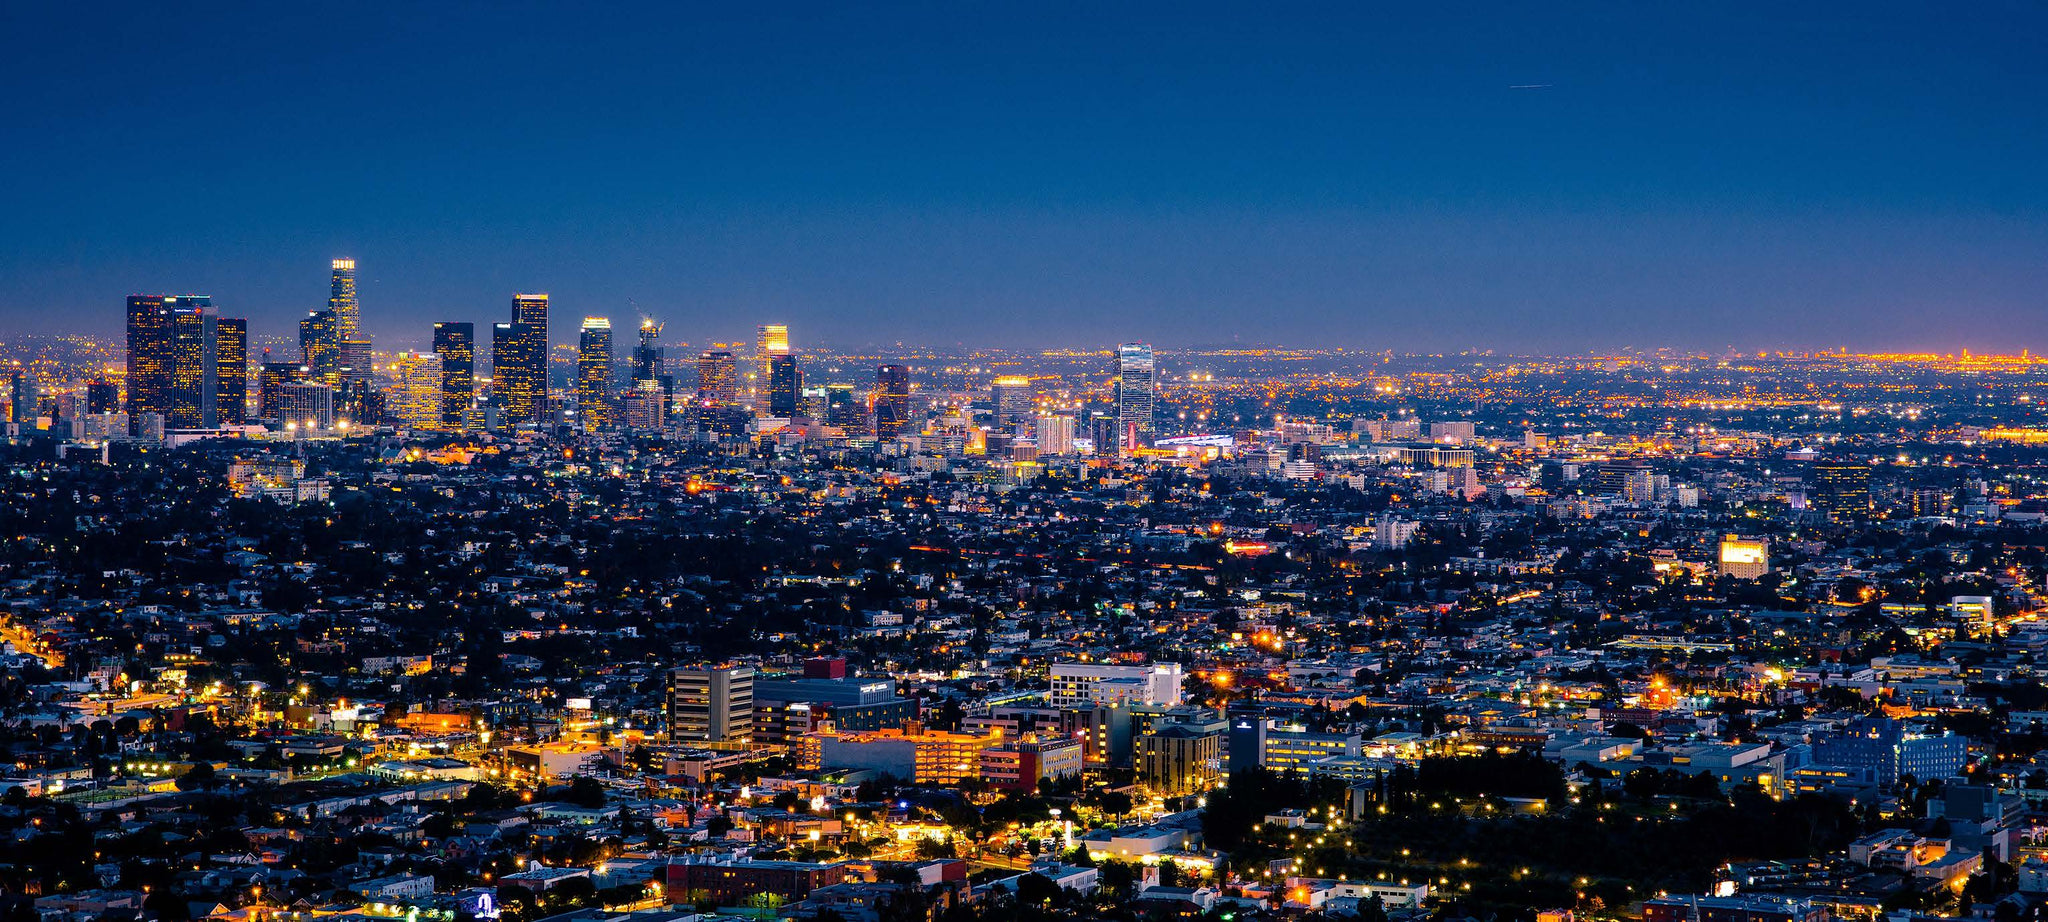 Los Angeles Photos, Pictures &- images | Live HD Wallpaper HQ ...